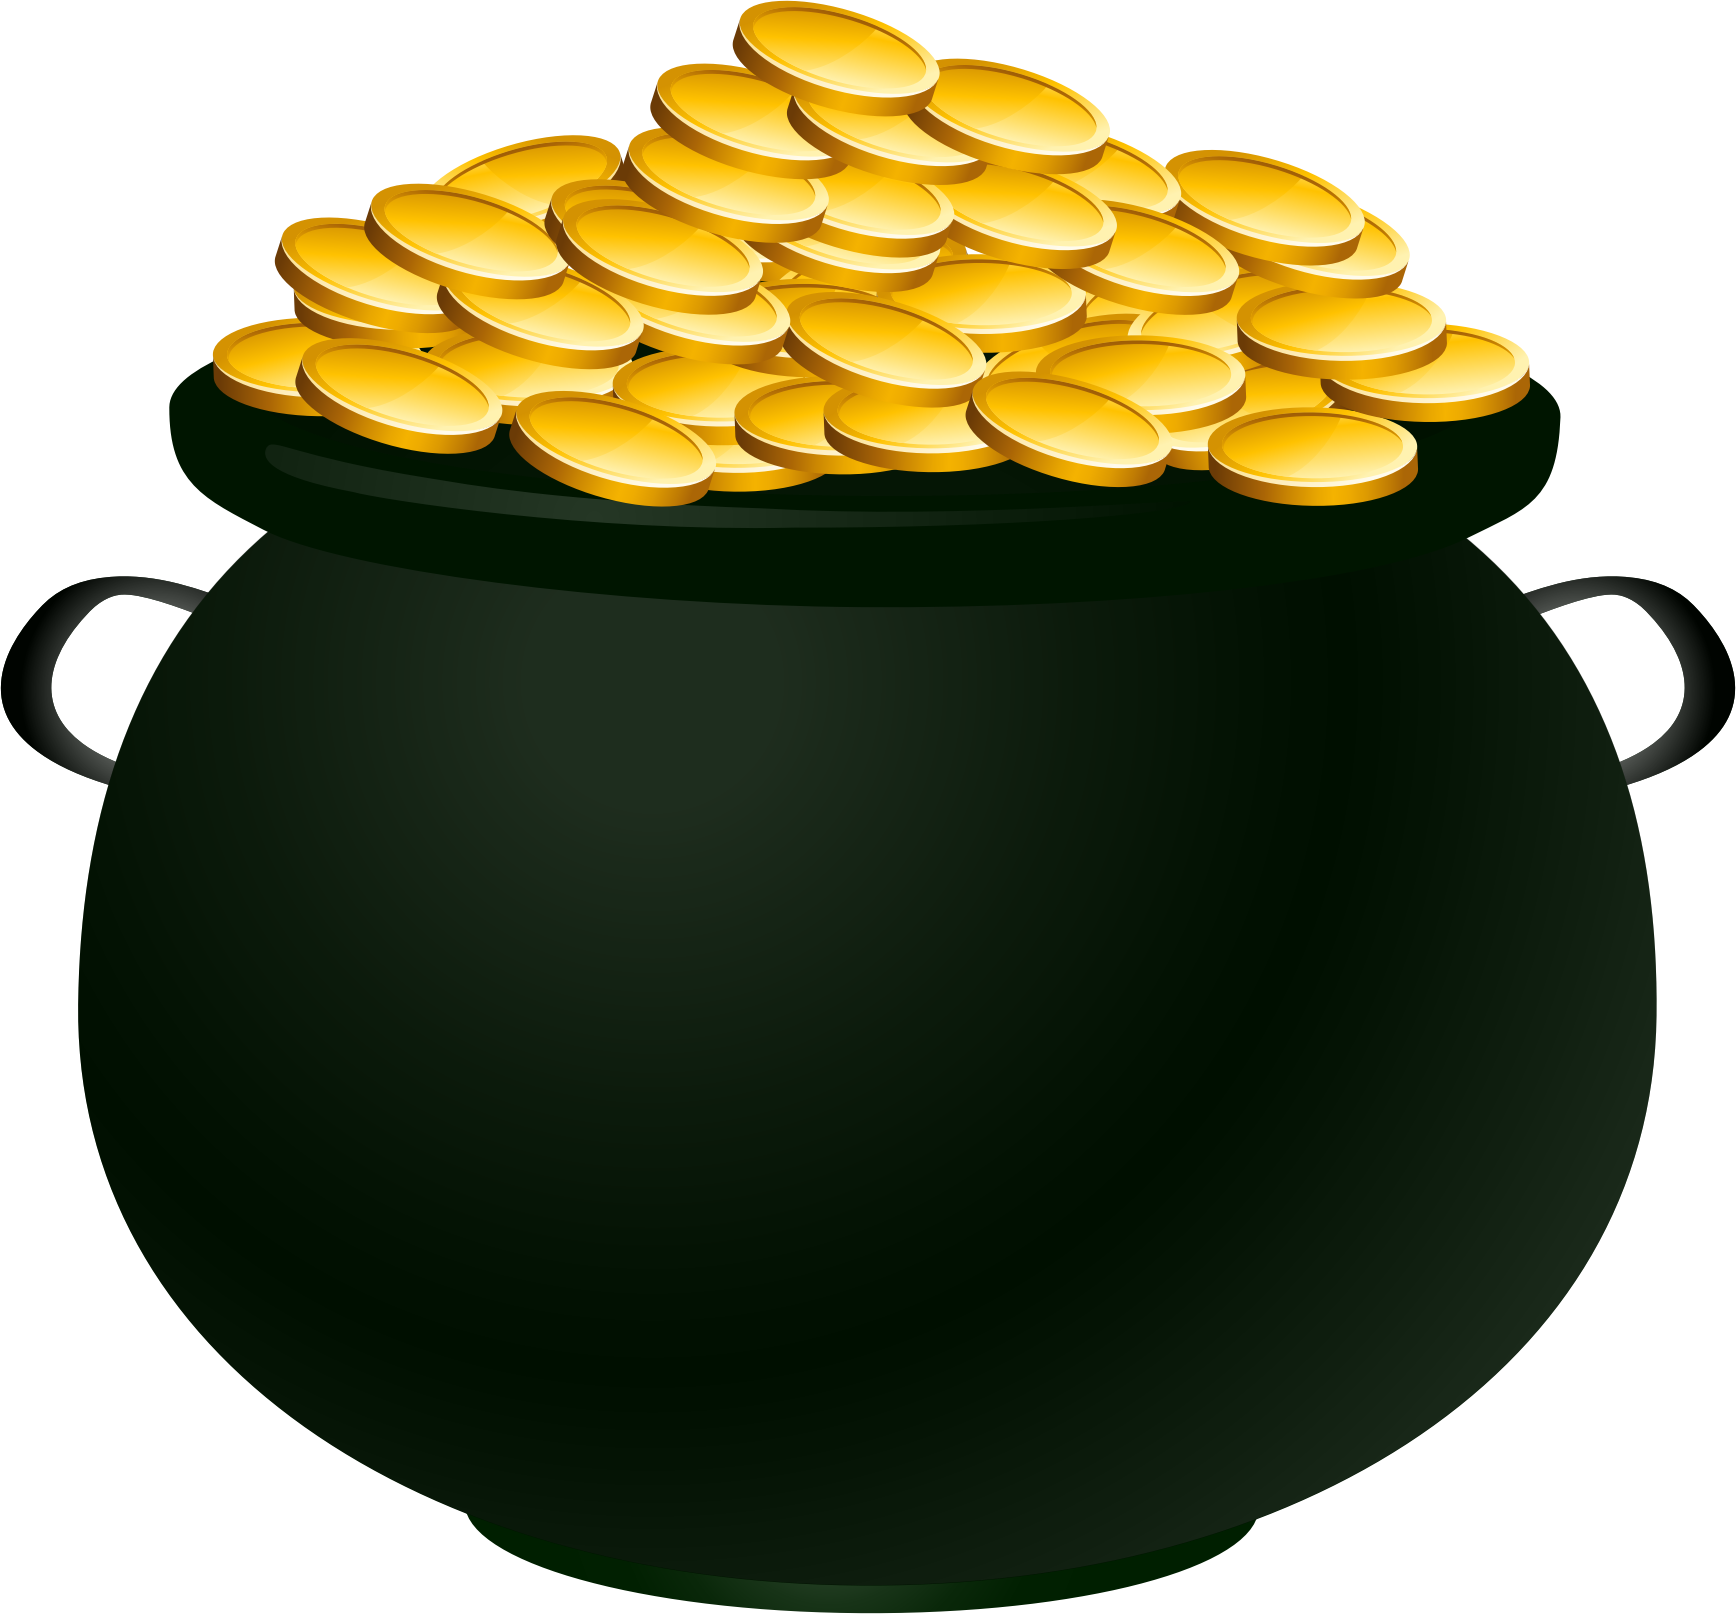 image pot of gold png clash of clans wiki fandom pot of gold clipart drawing pot of gold clipart sheet